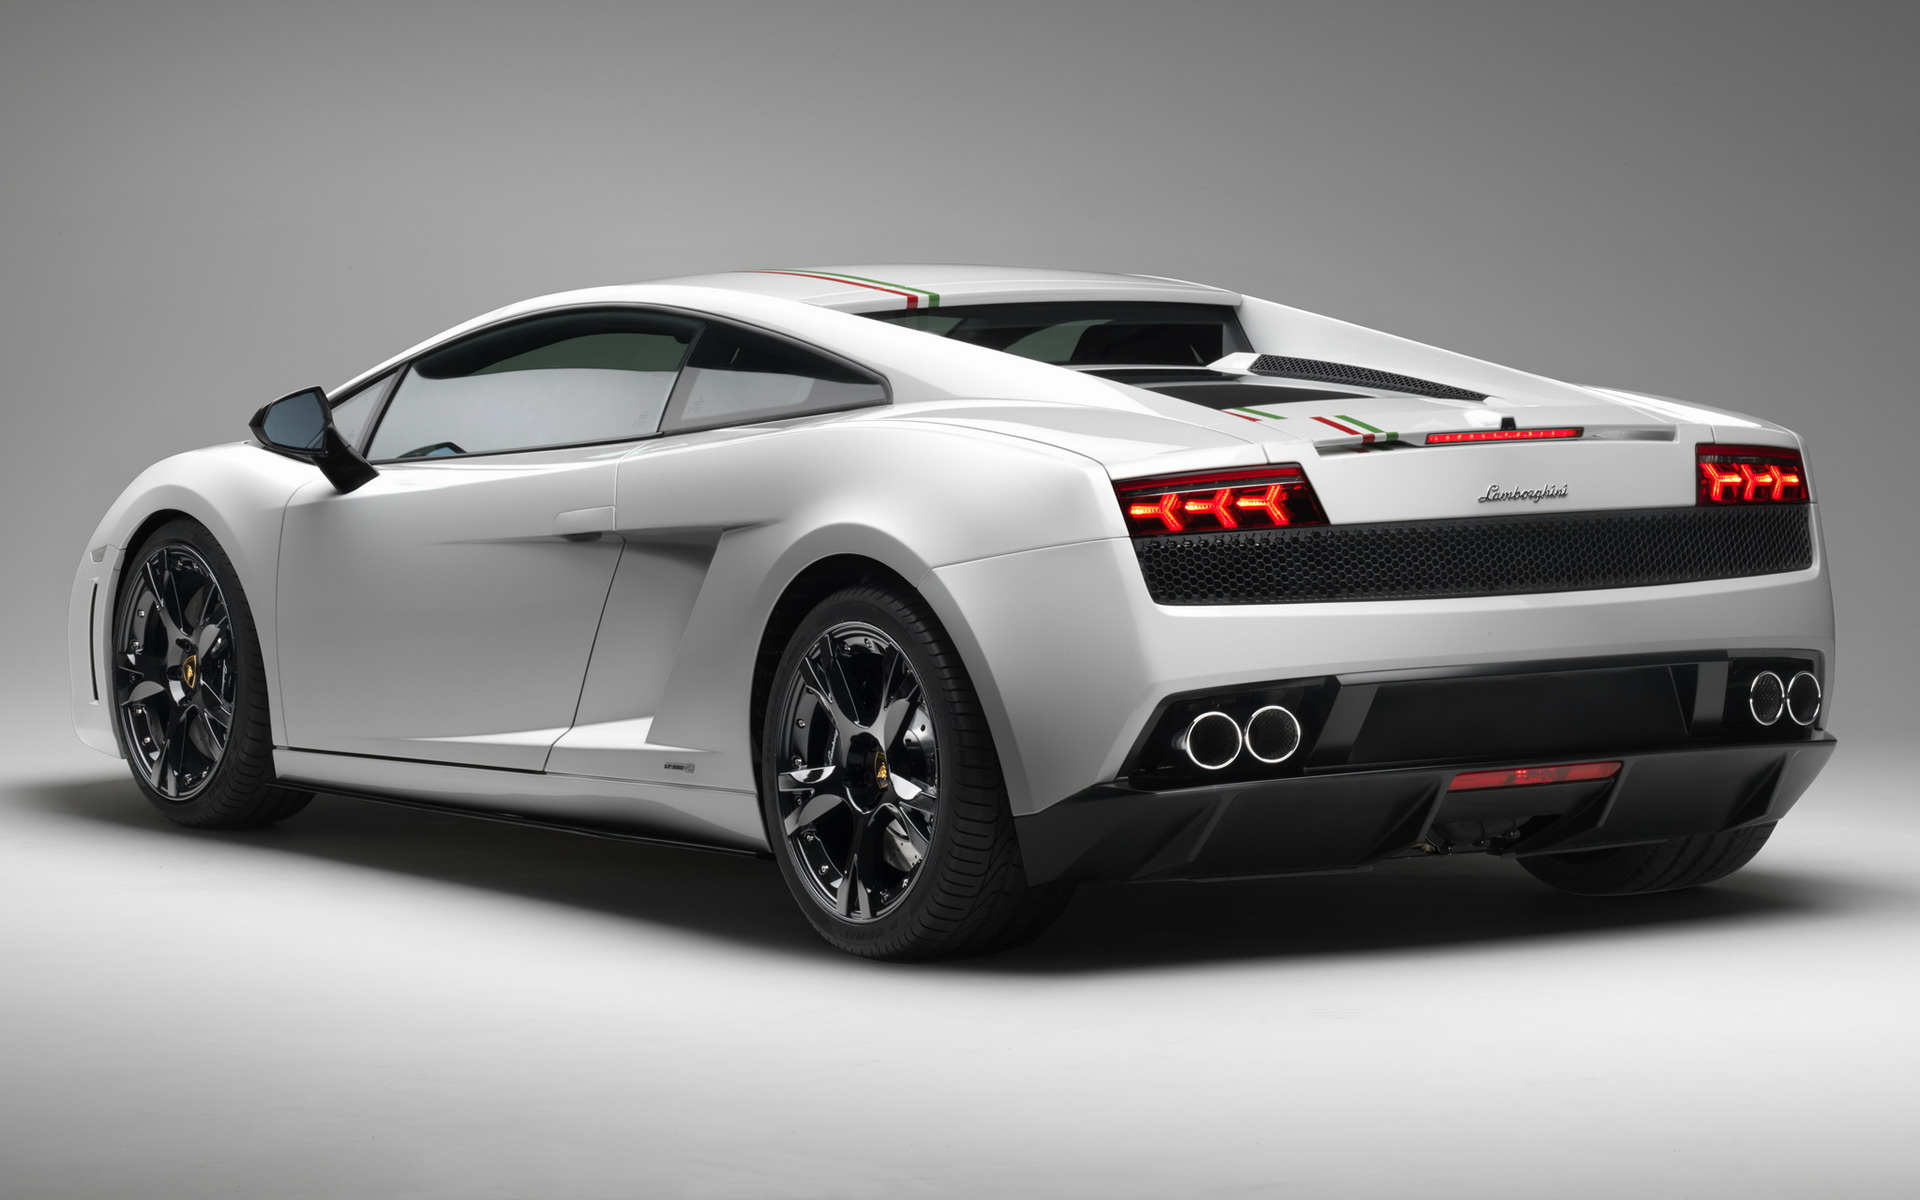 Lamborghini Gallardo LP 550 2 Tricolore 2011 Wallpapers And HD